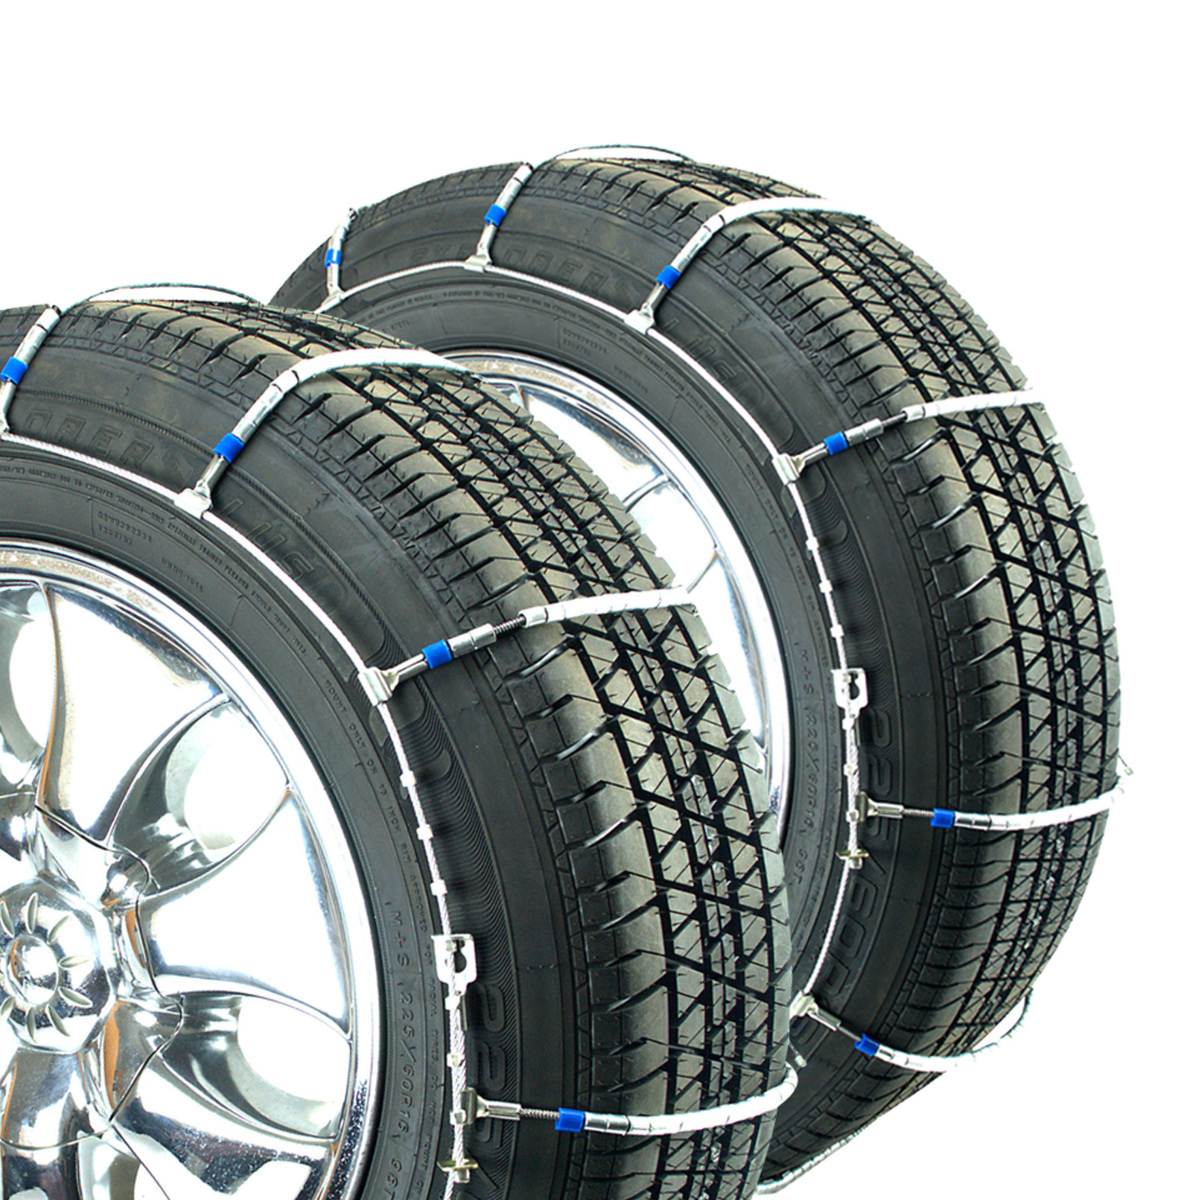 Details About An Penger Cable Tire Chains Snow Or Ice Covered Road 8 29mm 225 65 17